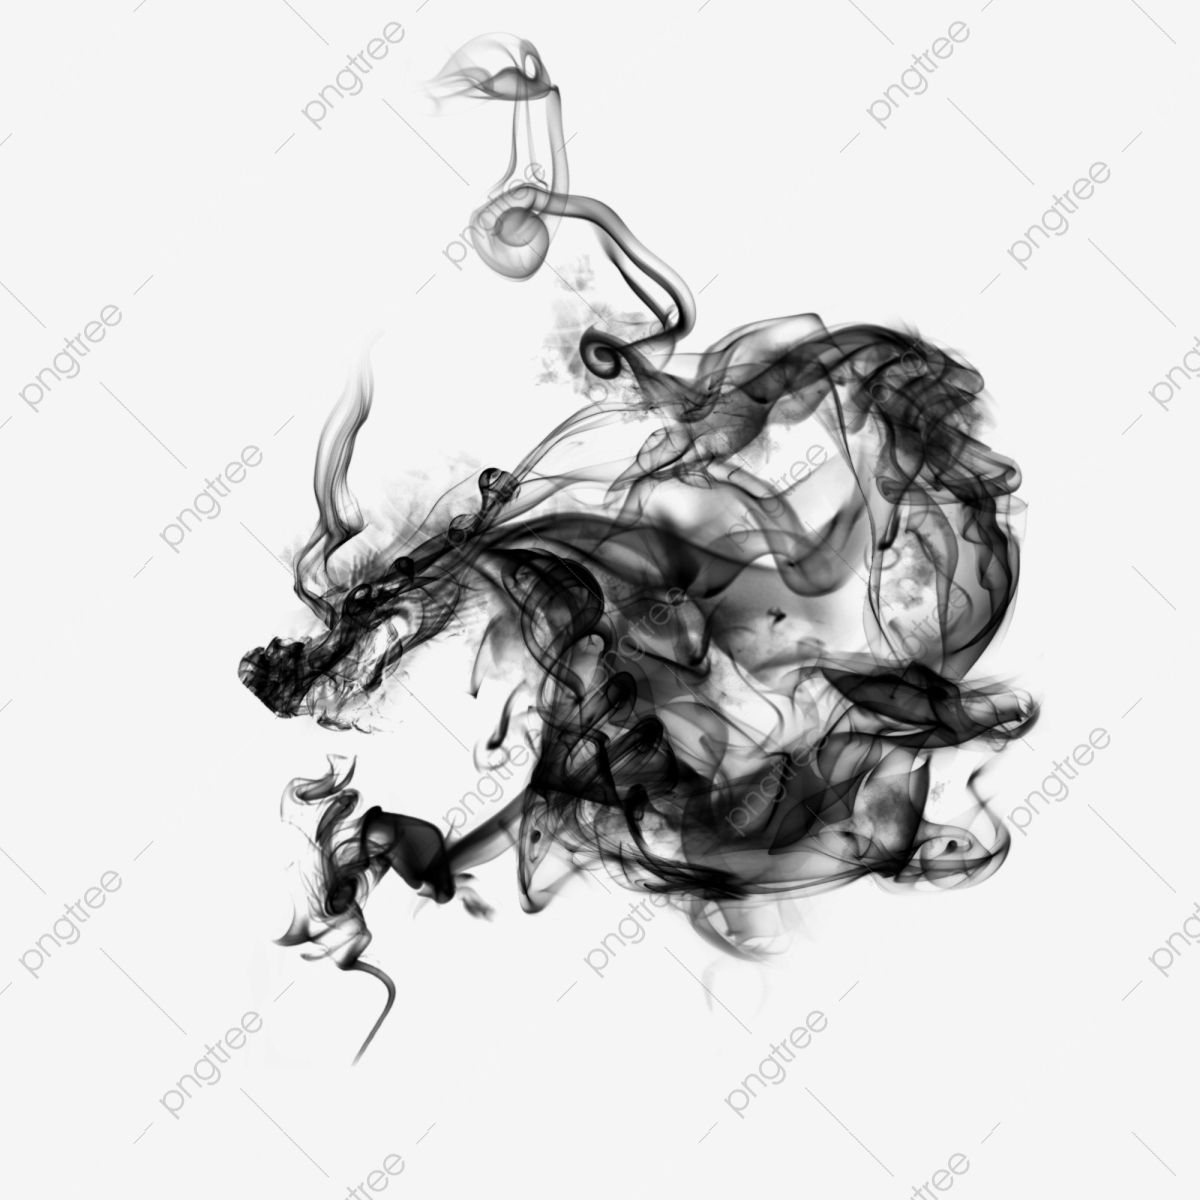 traditional chinese painting ink wind oriental dragon dragon smog domineering wild png transparent clipart image and psd file for free download chinese painting chinese dragon art traditional ink traditional chinese painting ink wind